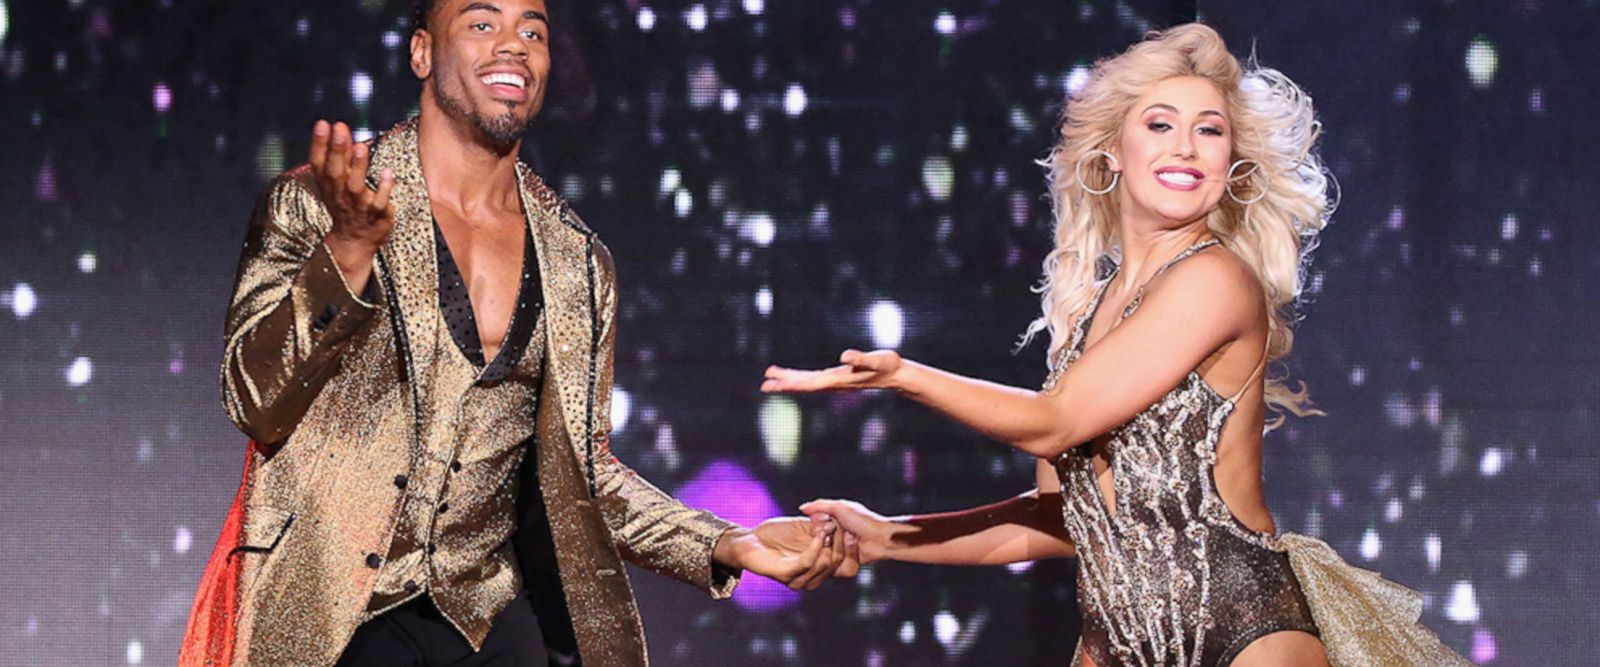 VIDEO: Rashad Jennings offers advice on how to succeed in dancing and in life